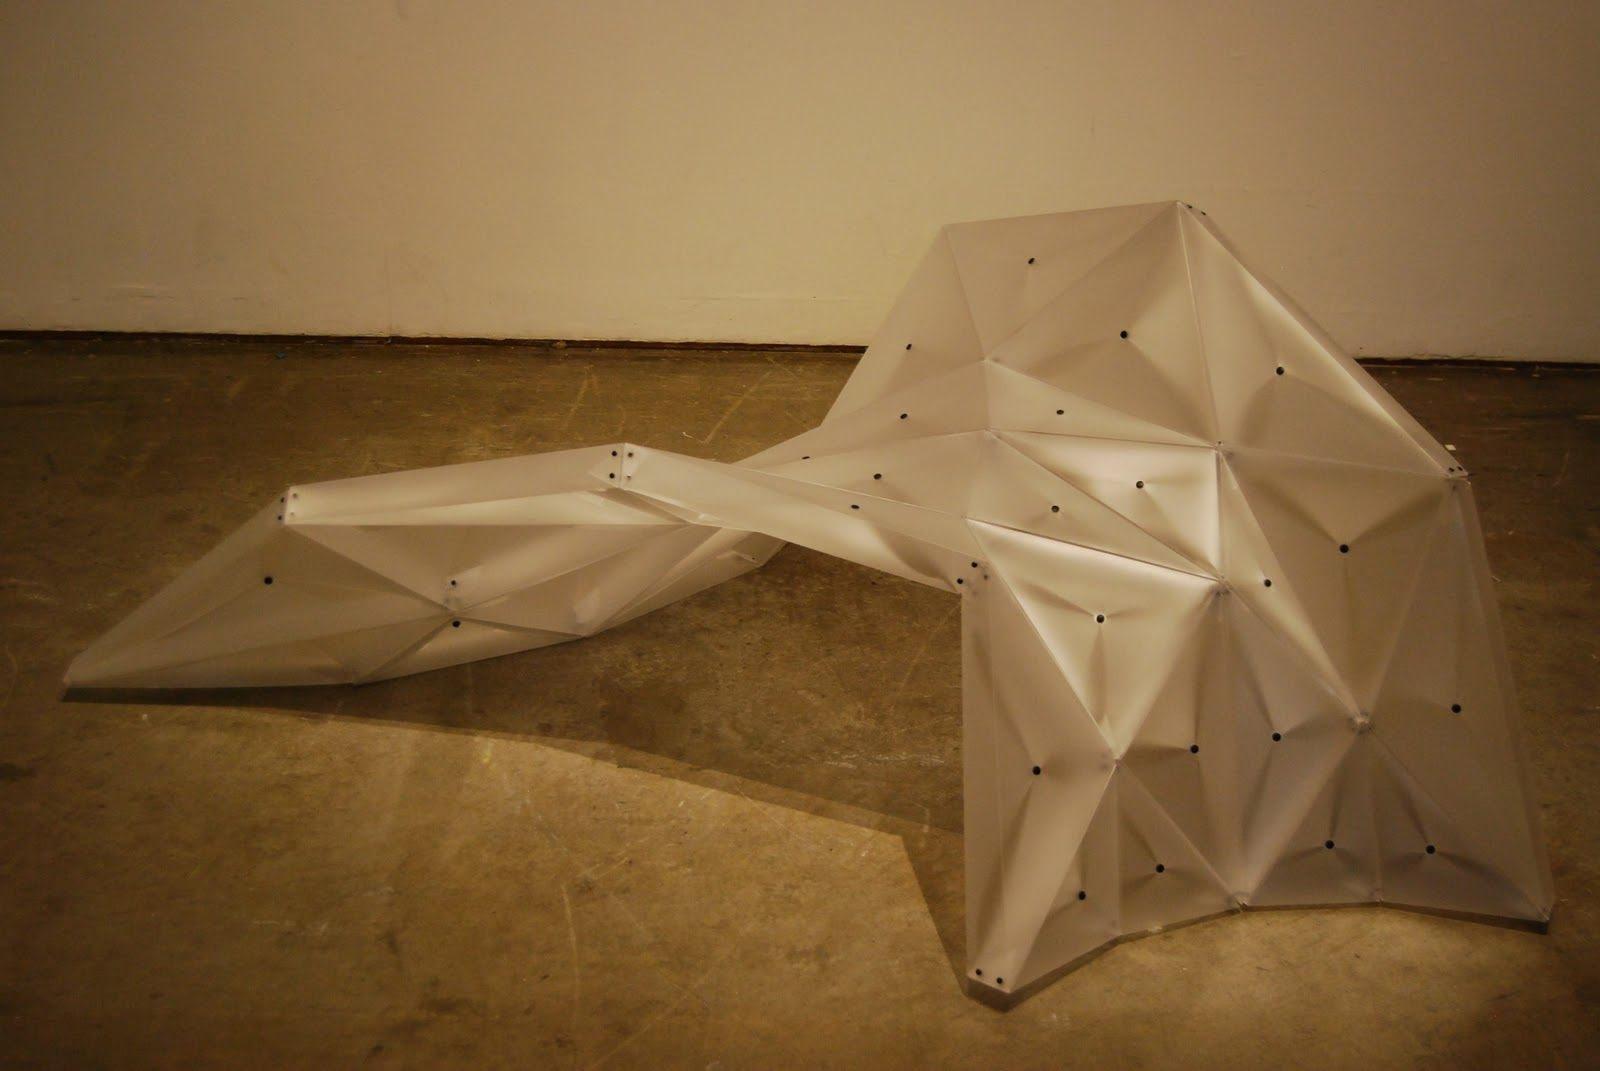 Electronic Delectables: Digital Fabrication Project